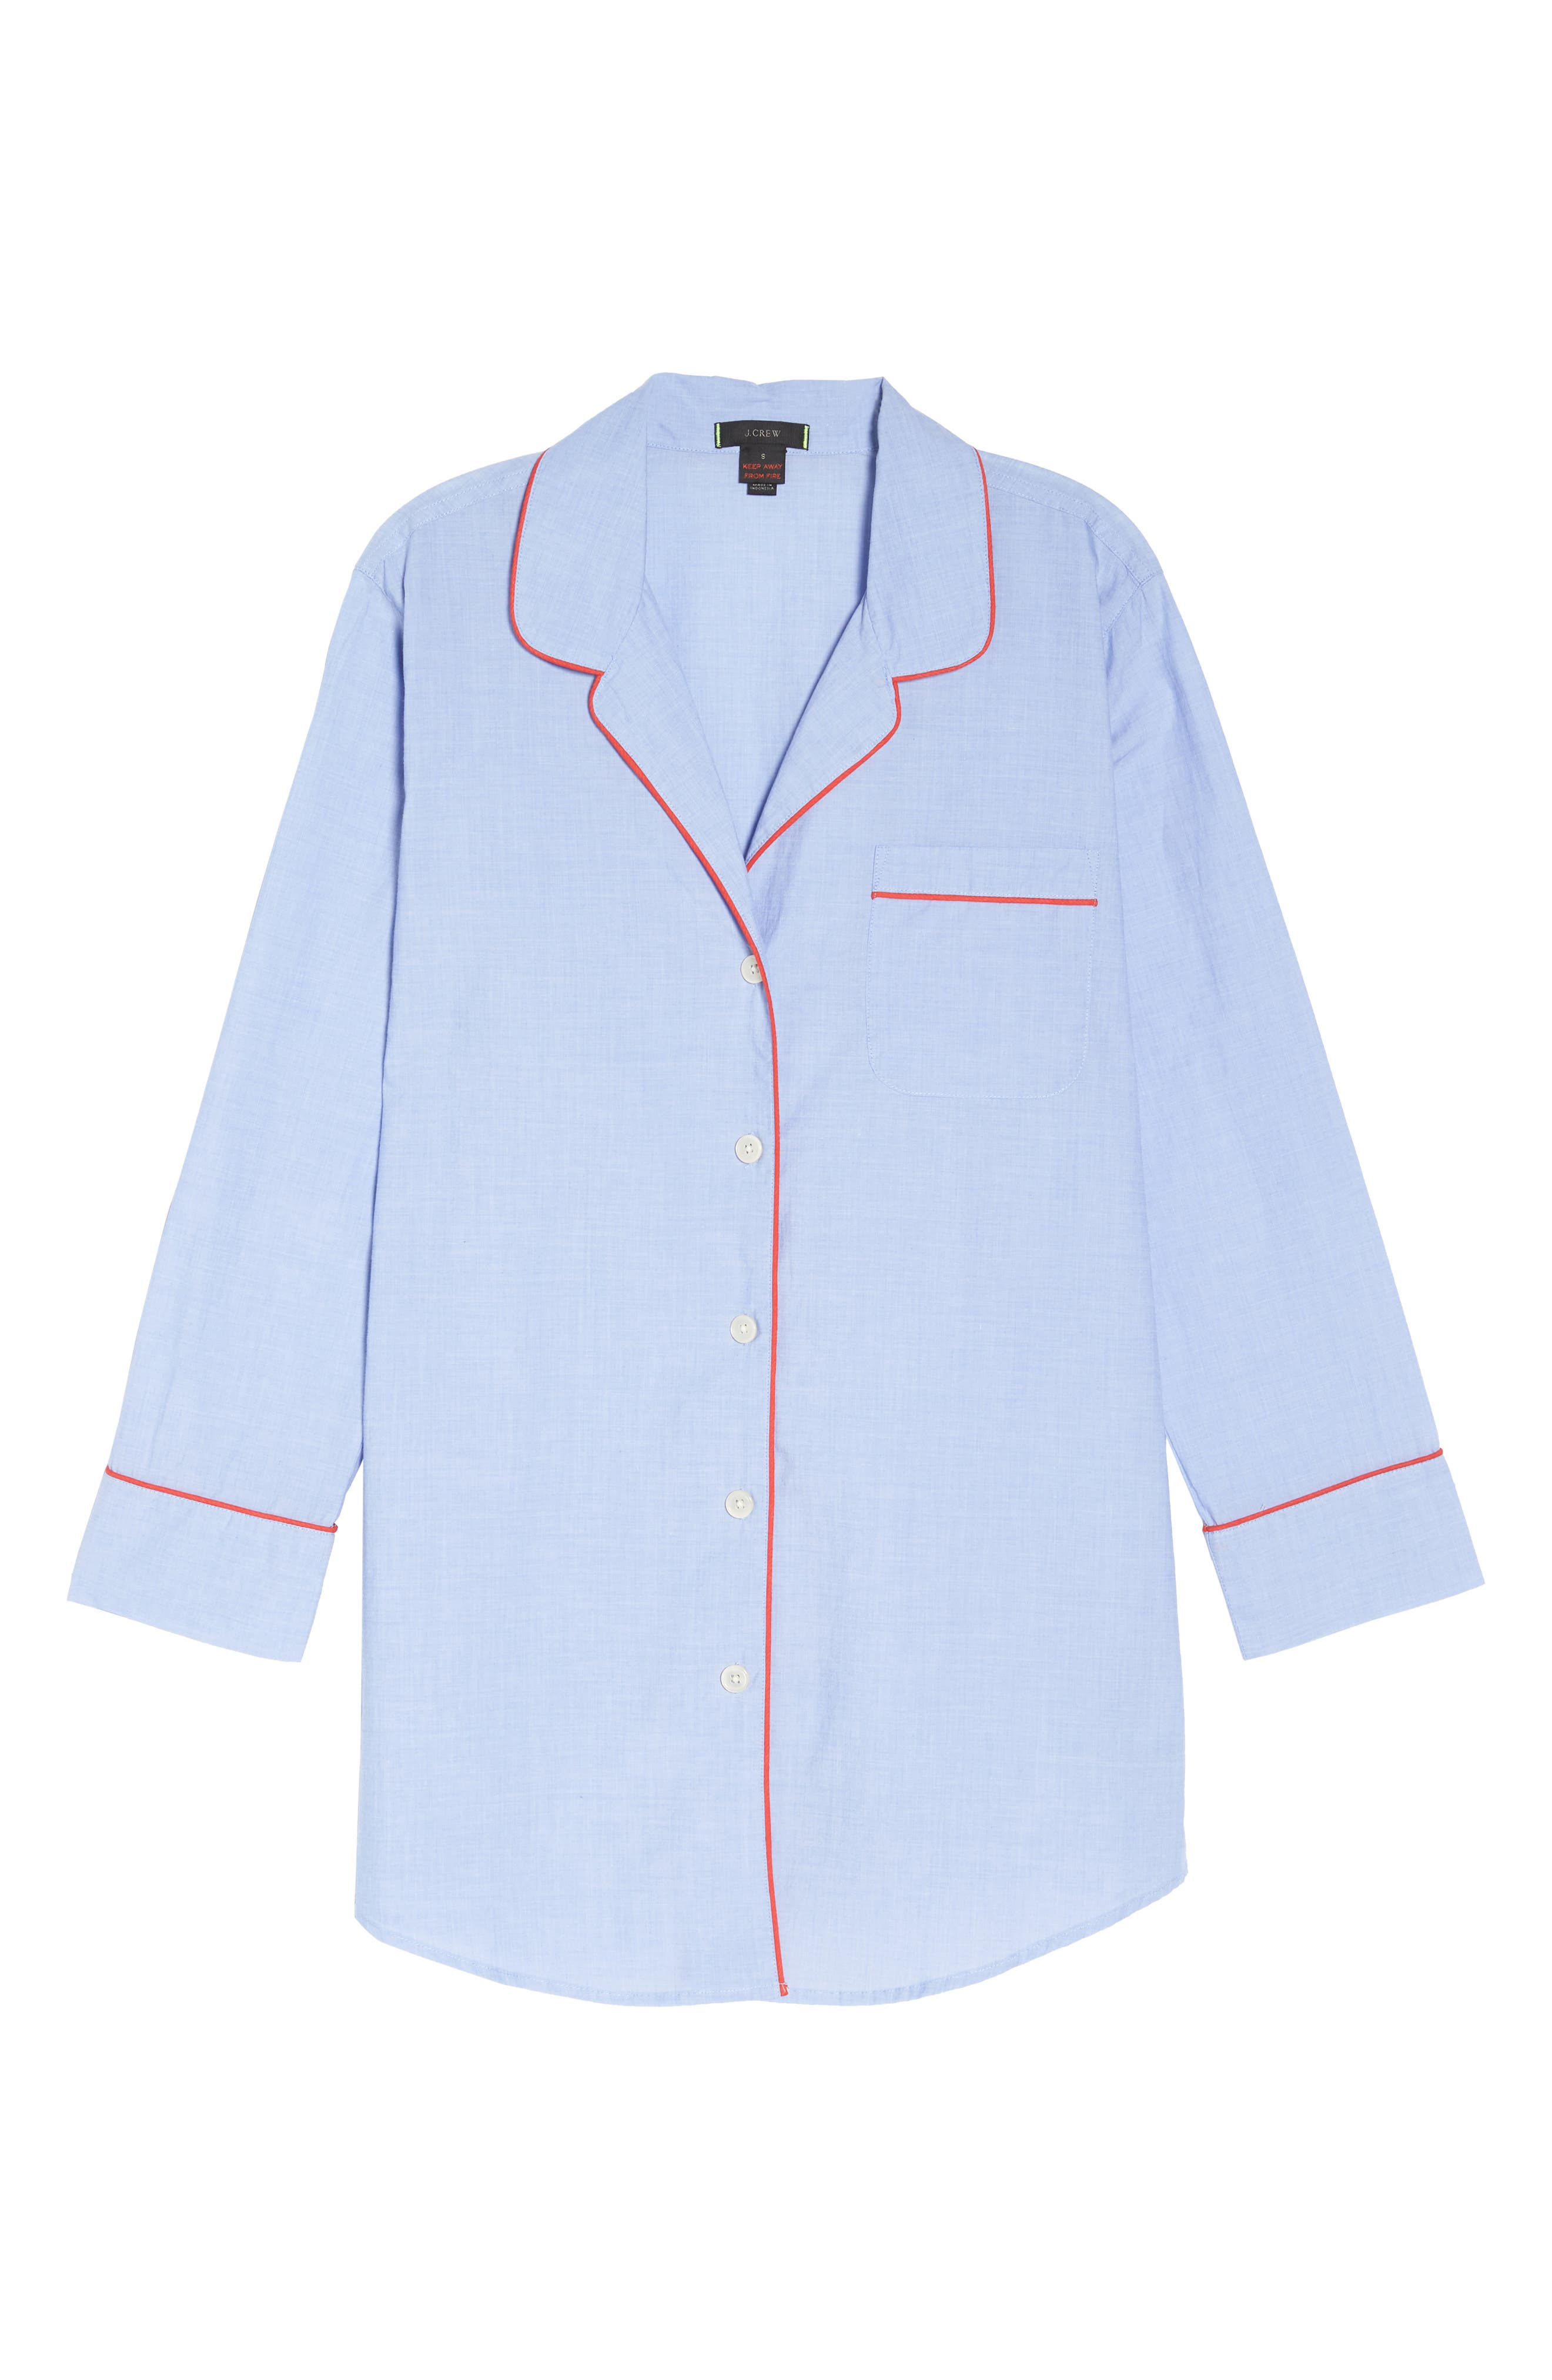 Woven Nightshirt,                             Alternate thumbnail 6, color,